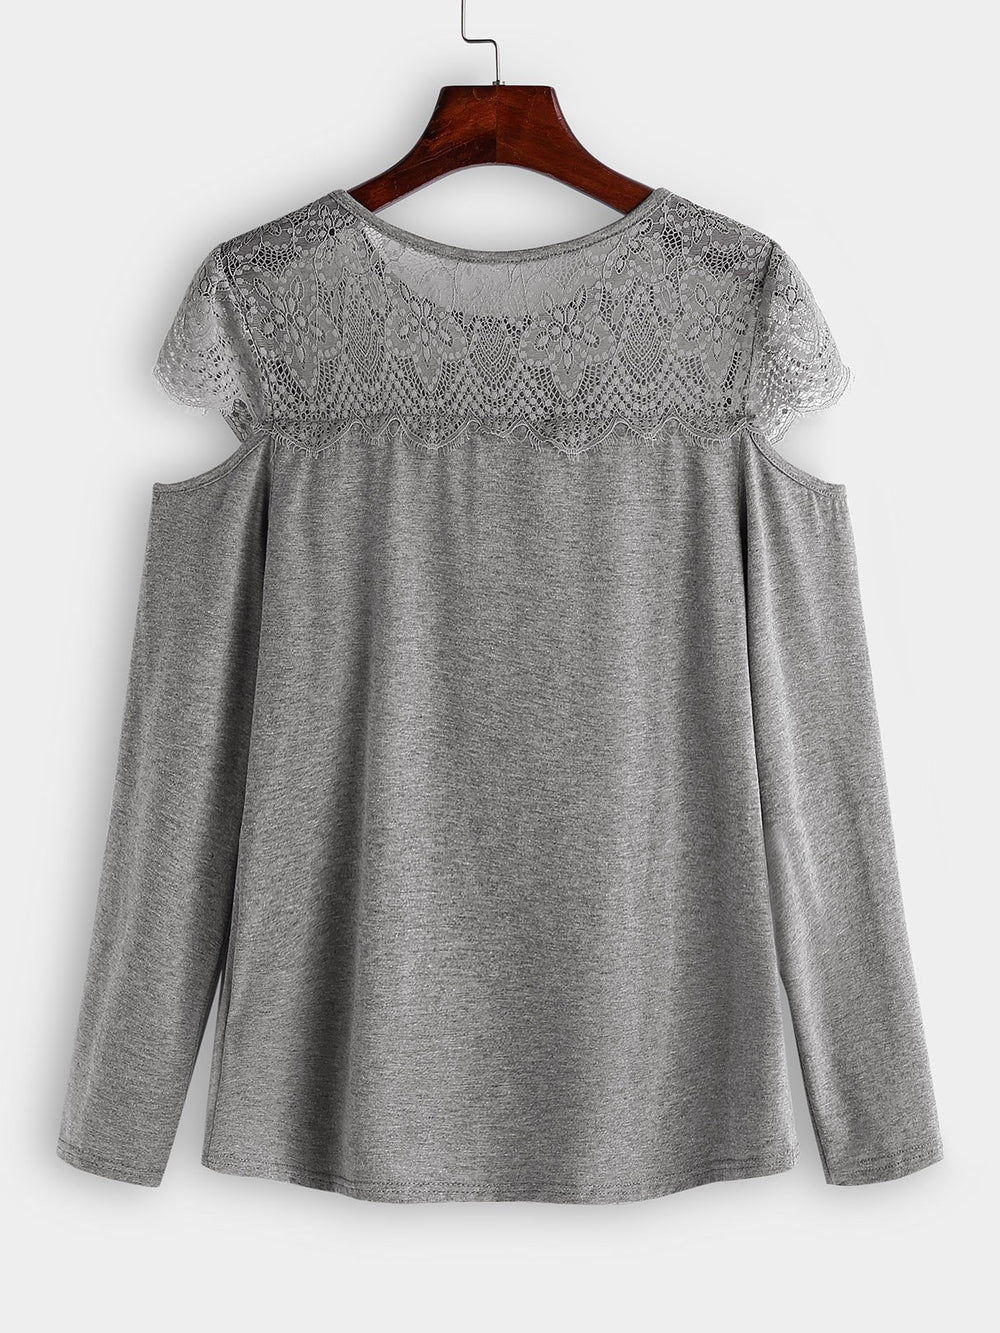 Tops And Dresses For Women